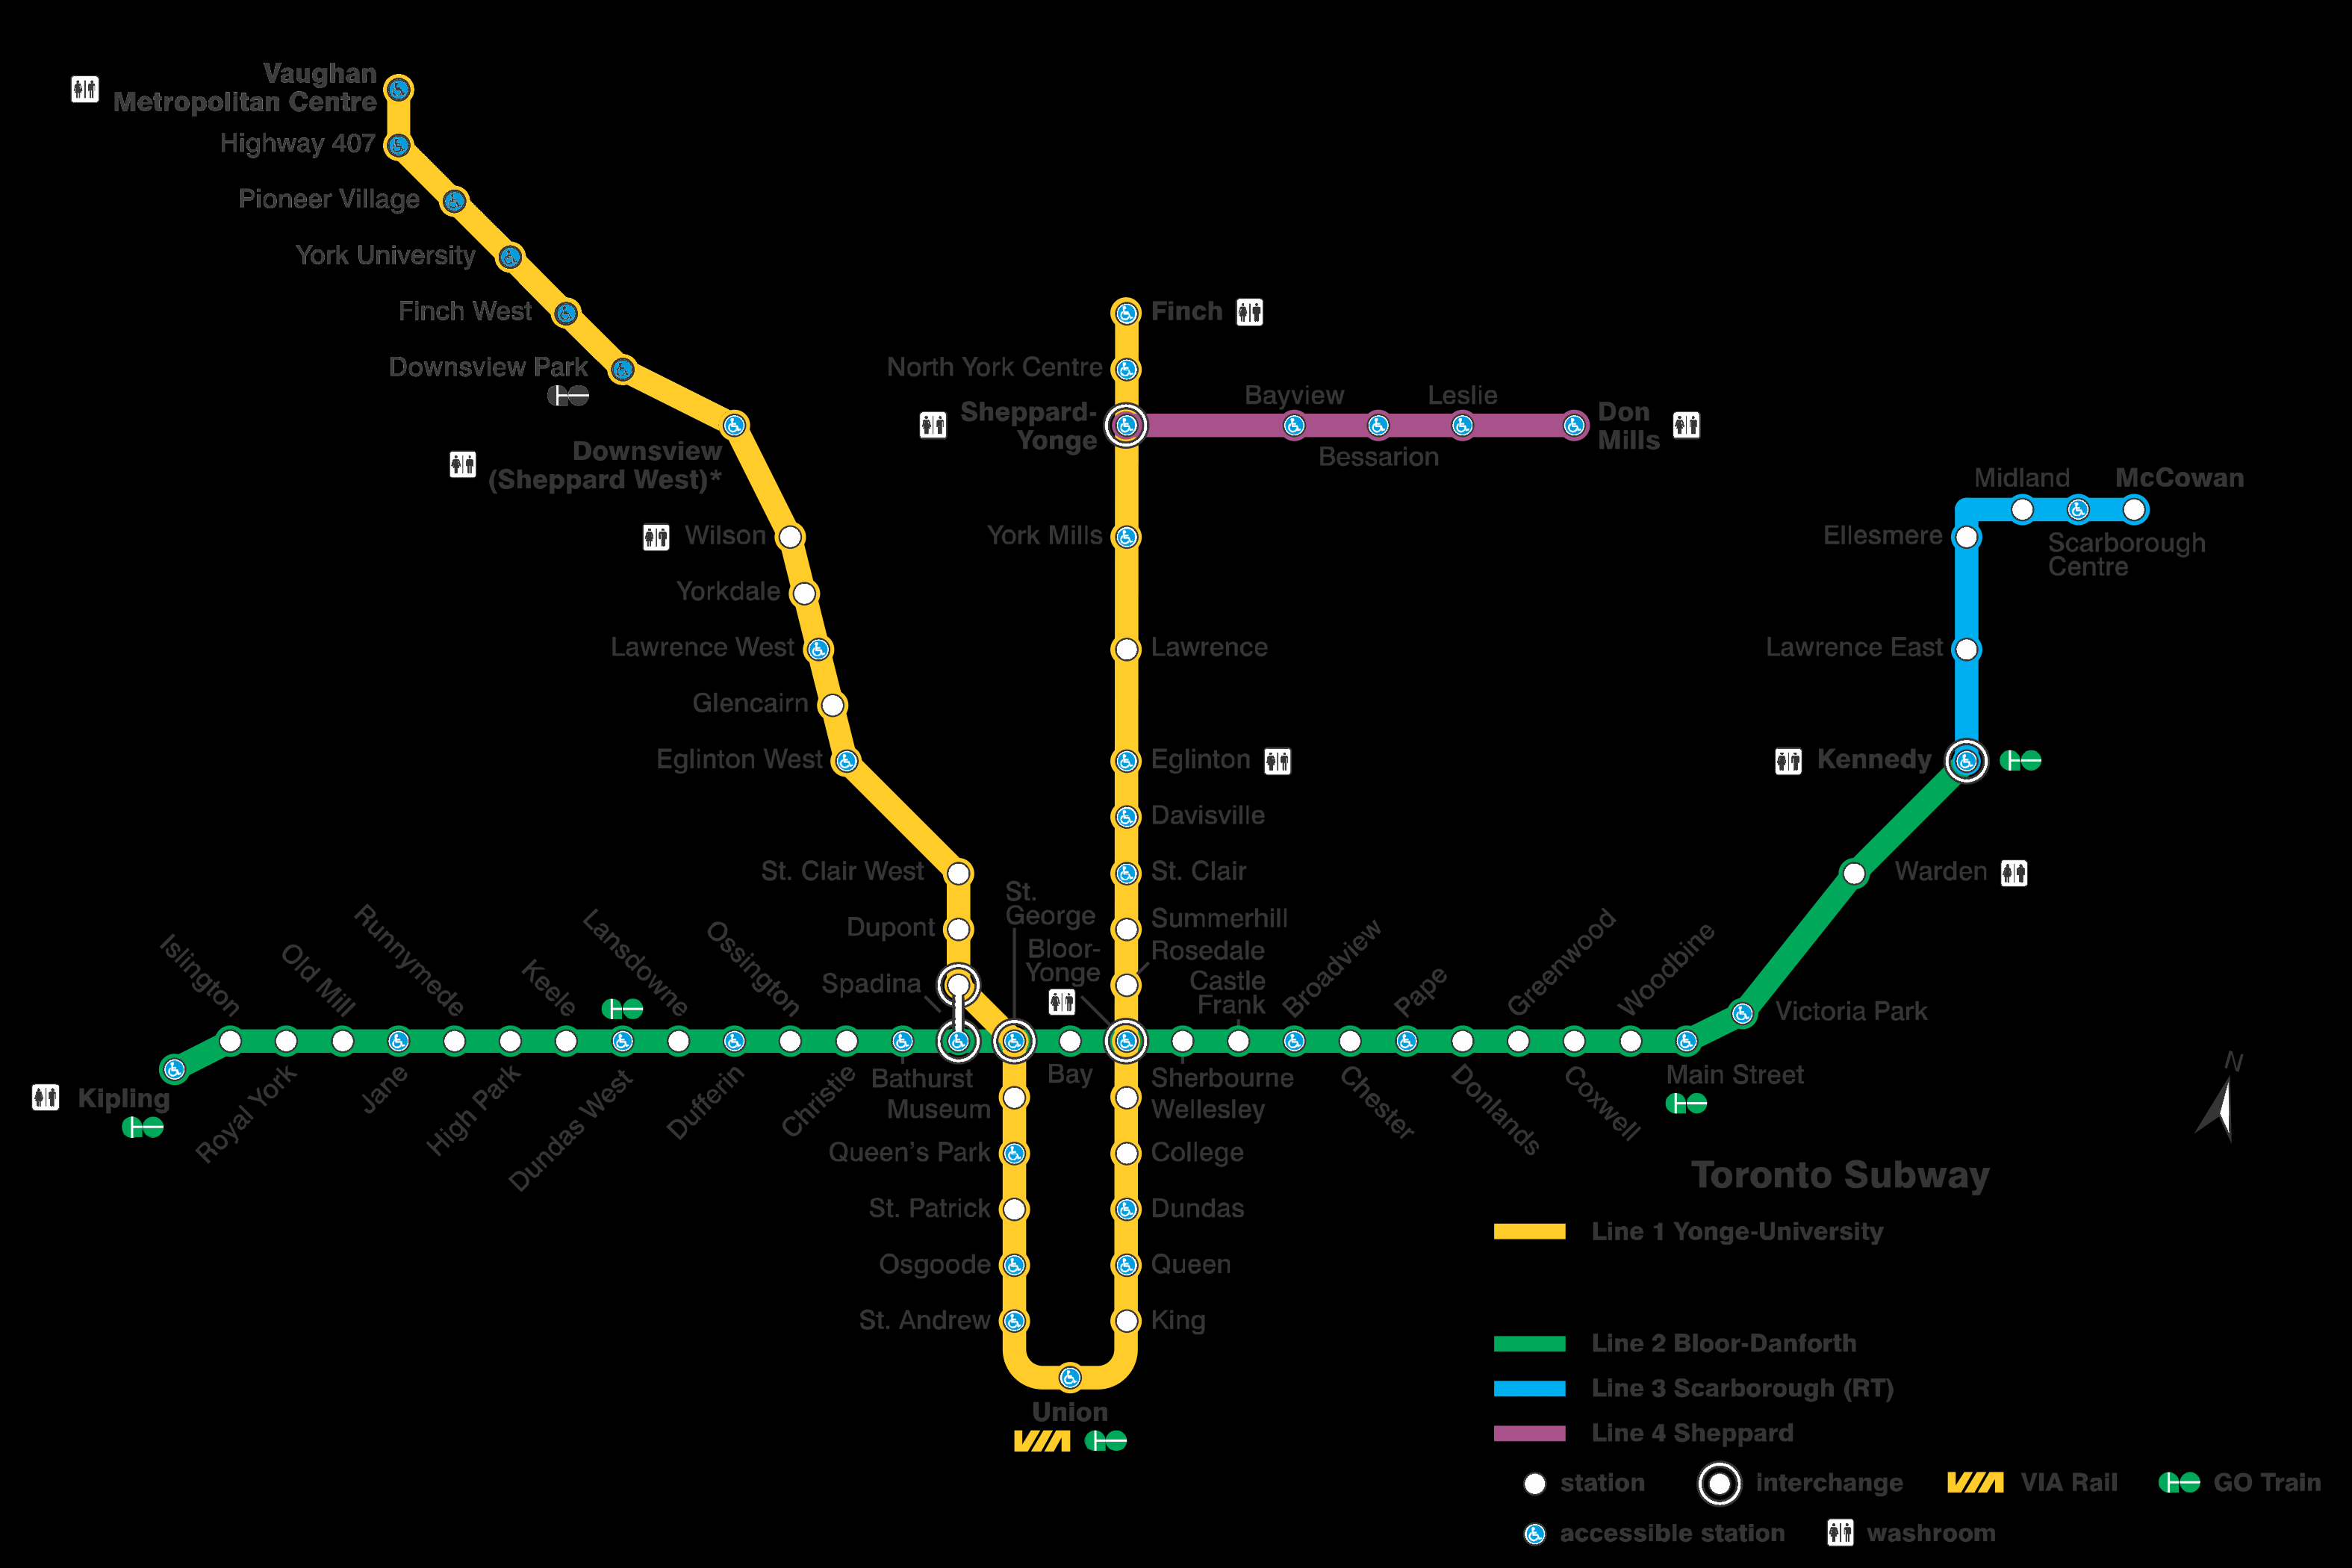 Toronto Subway Map Print.Toronto Subway System Info Interactive Ttc Subway Map